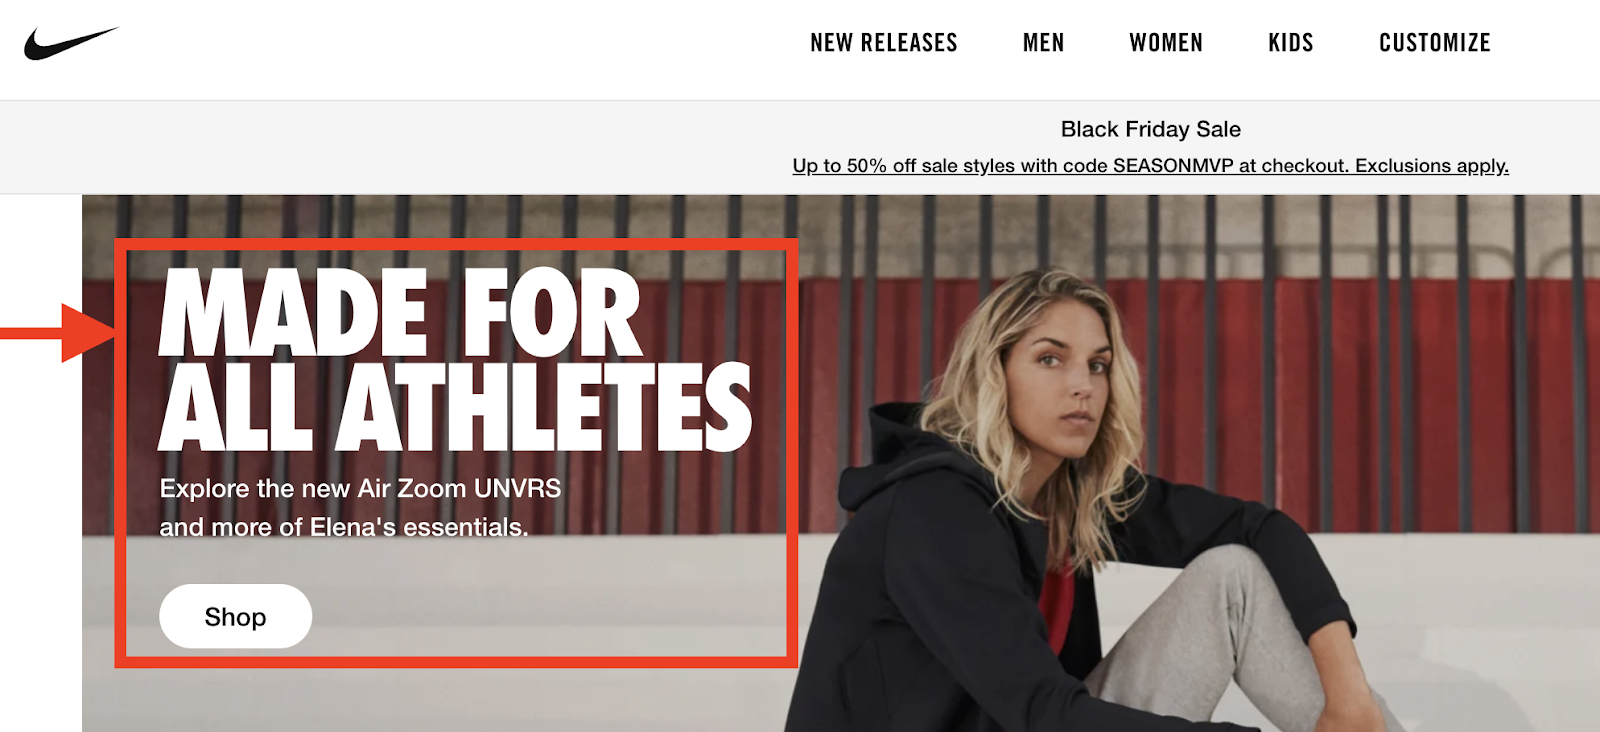 made for athletes target audience